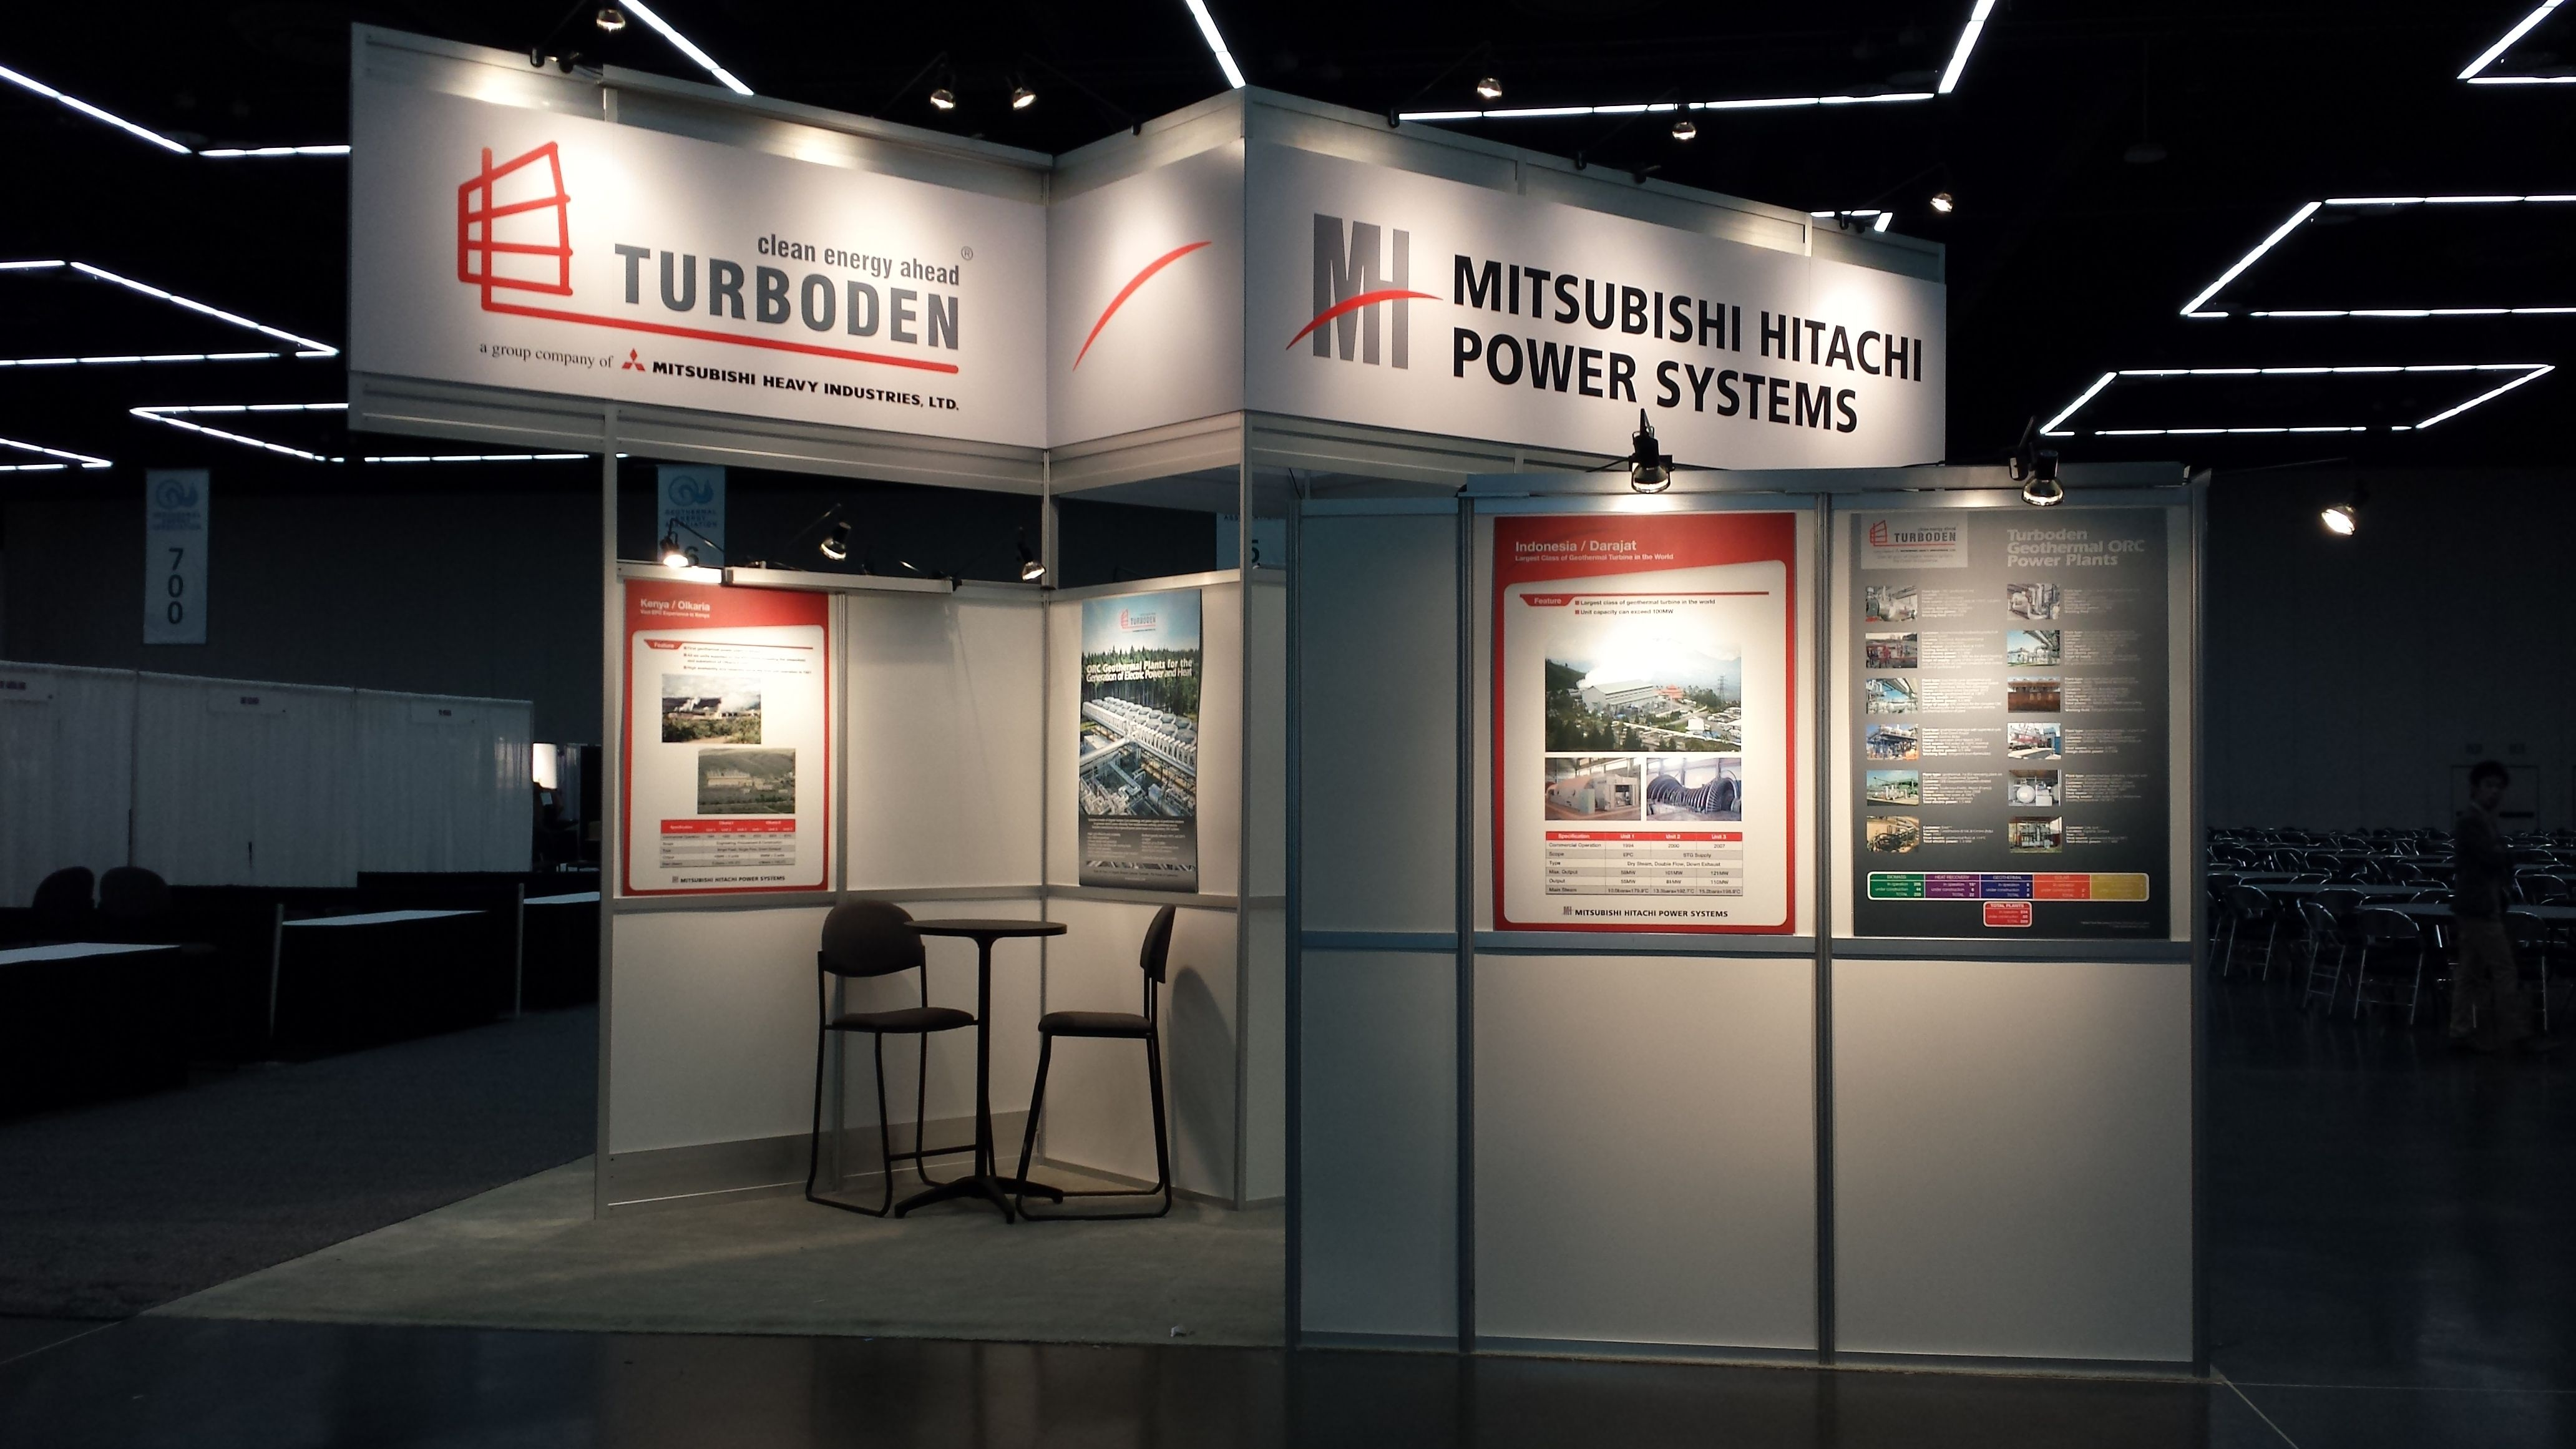 Mitsubishi Hitachi Power Systems Booth exhibit booth design